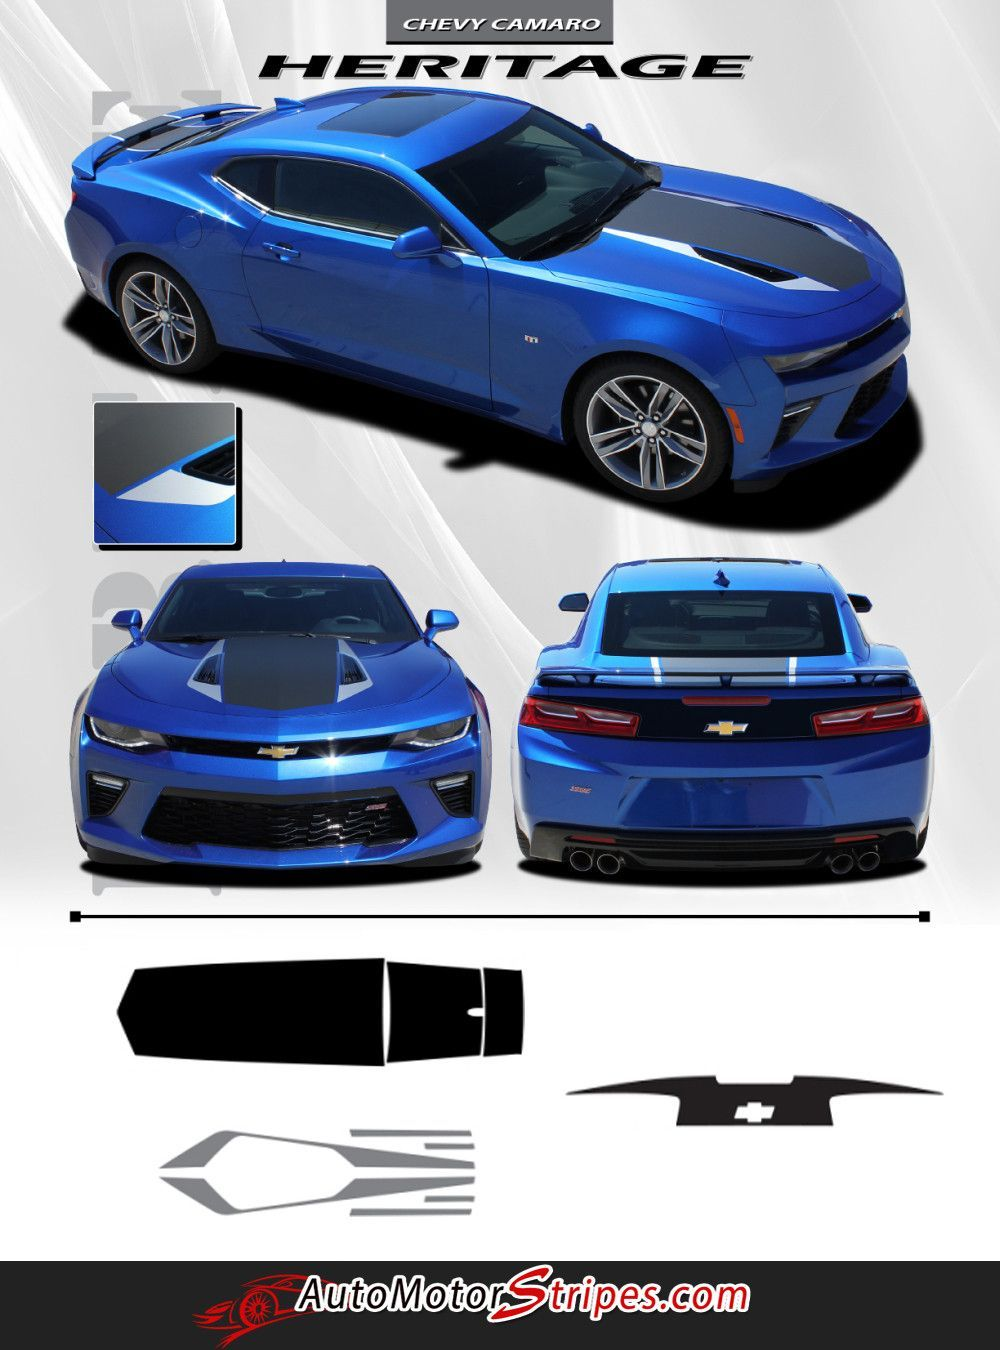 2017 chevrolet camaro ss 50th anniversary edition to pace 100th indy 500 with roger penske behind the wheel auto affection pinterest camaro ss